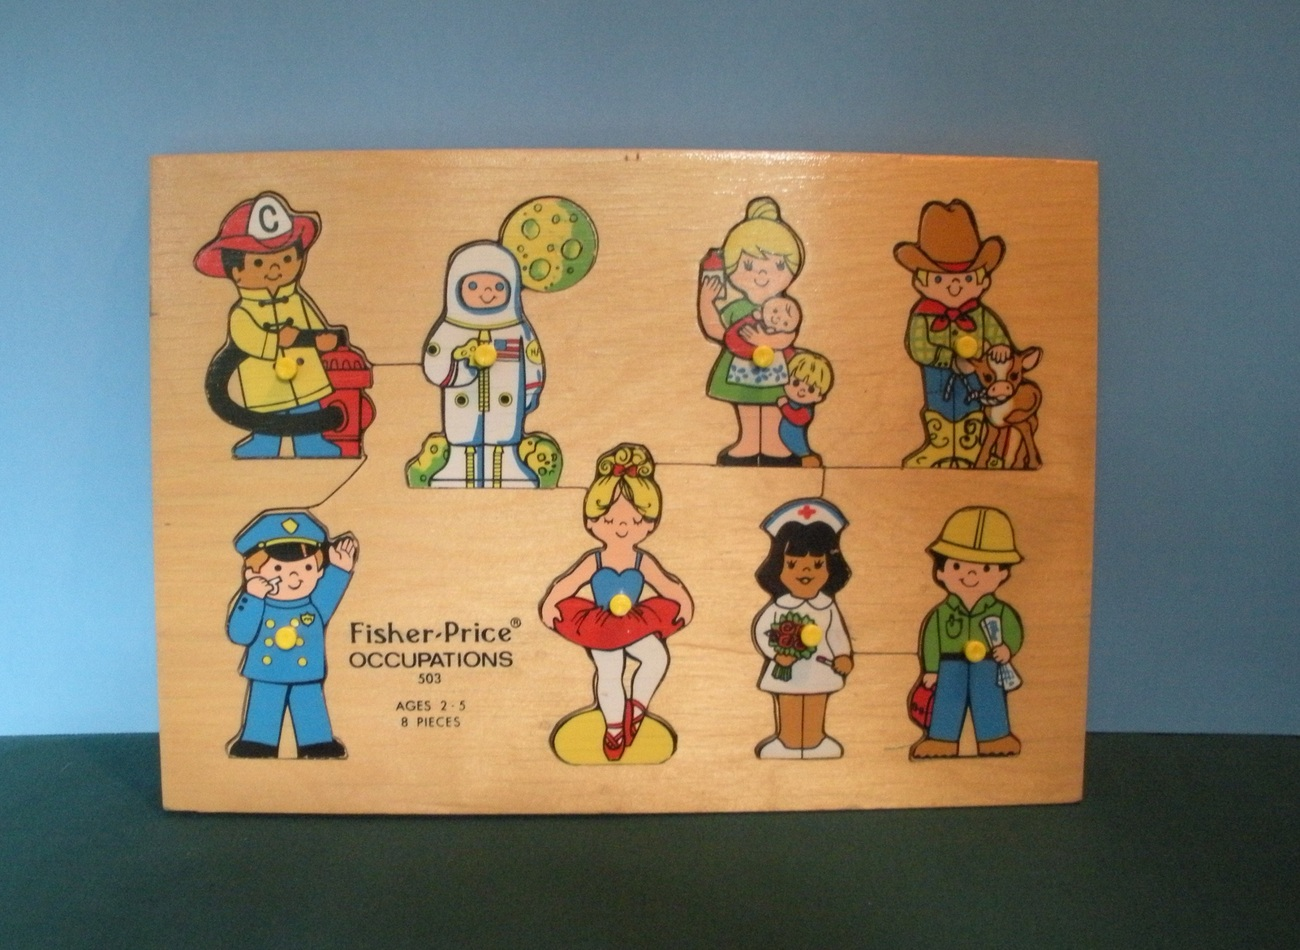 Vintage Fisher Price #503 Occupations Pick Up 'N Peek Wood Puzzle EXC++!